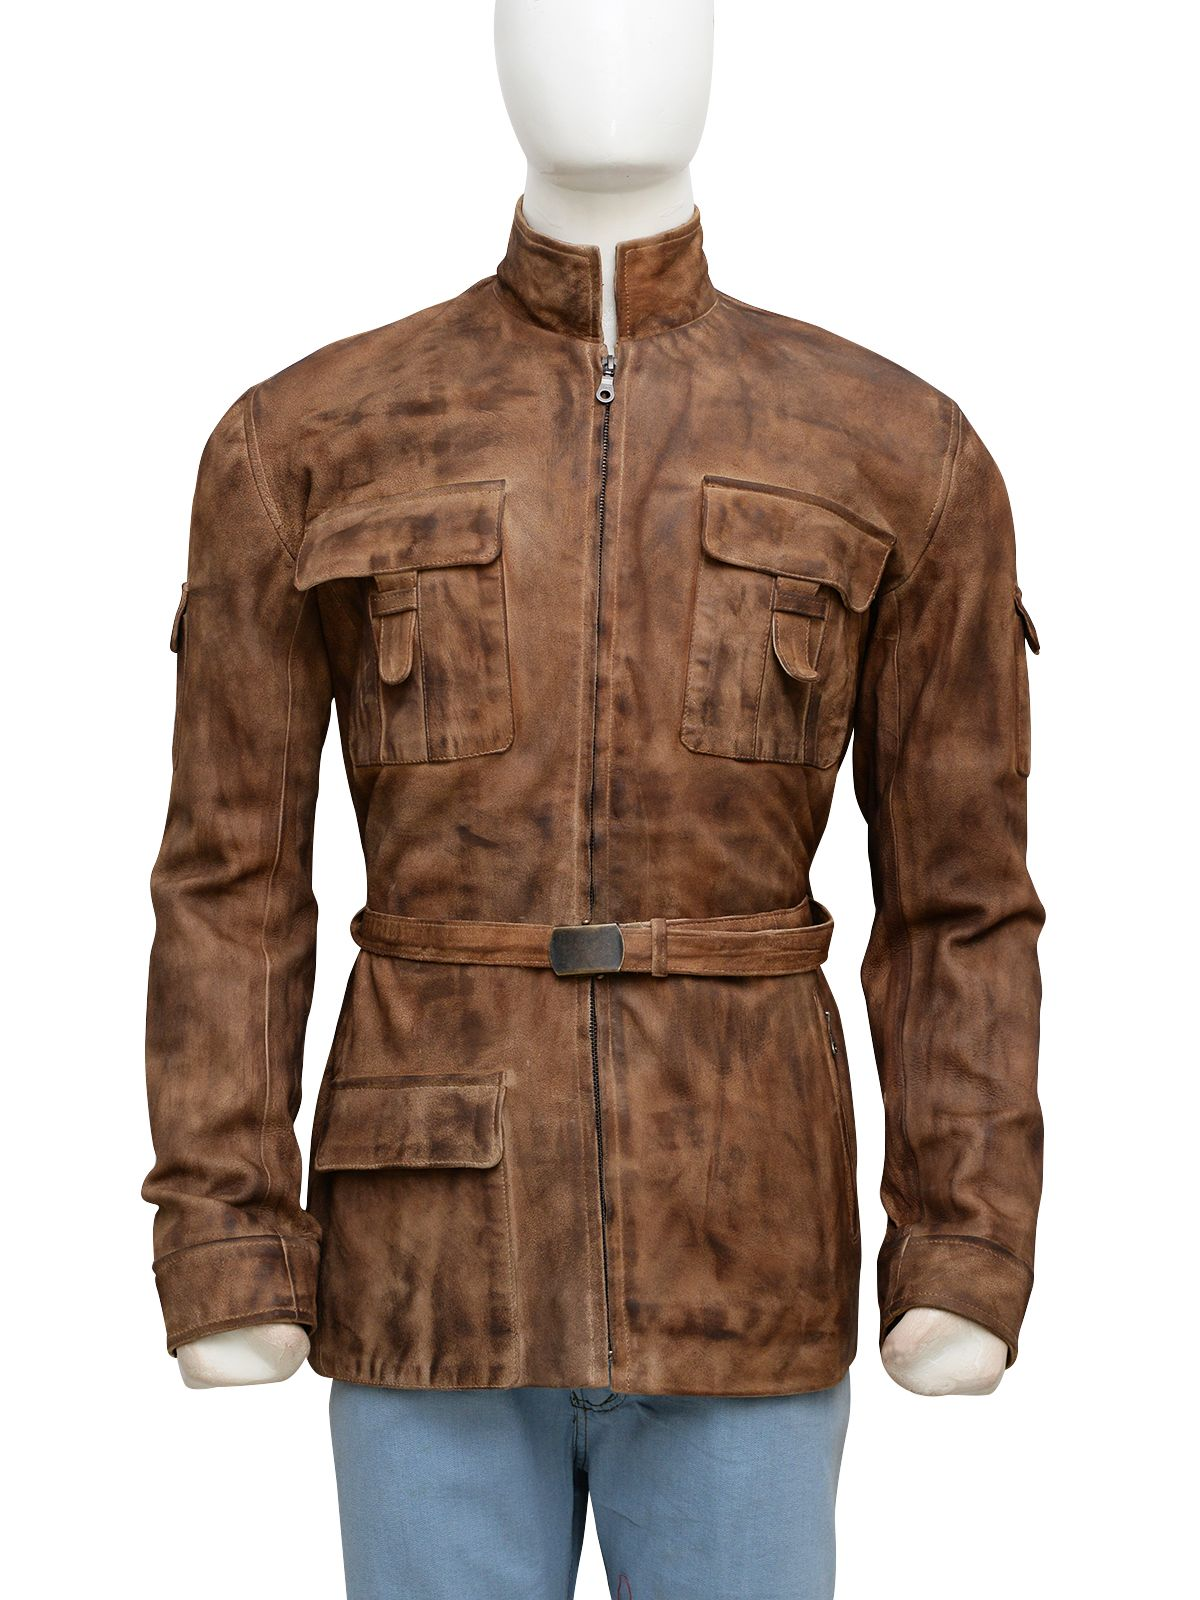 a42804b1217 The Mark Hamill Star Wars Leather Jacket is Nice Smoky Brown Clothing  Available Here.